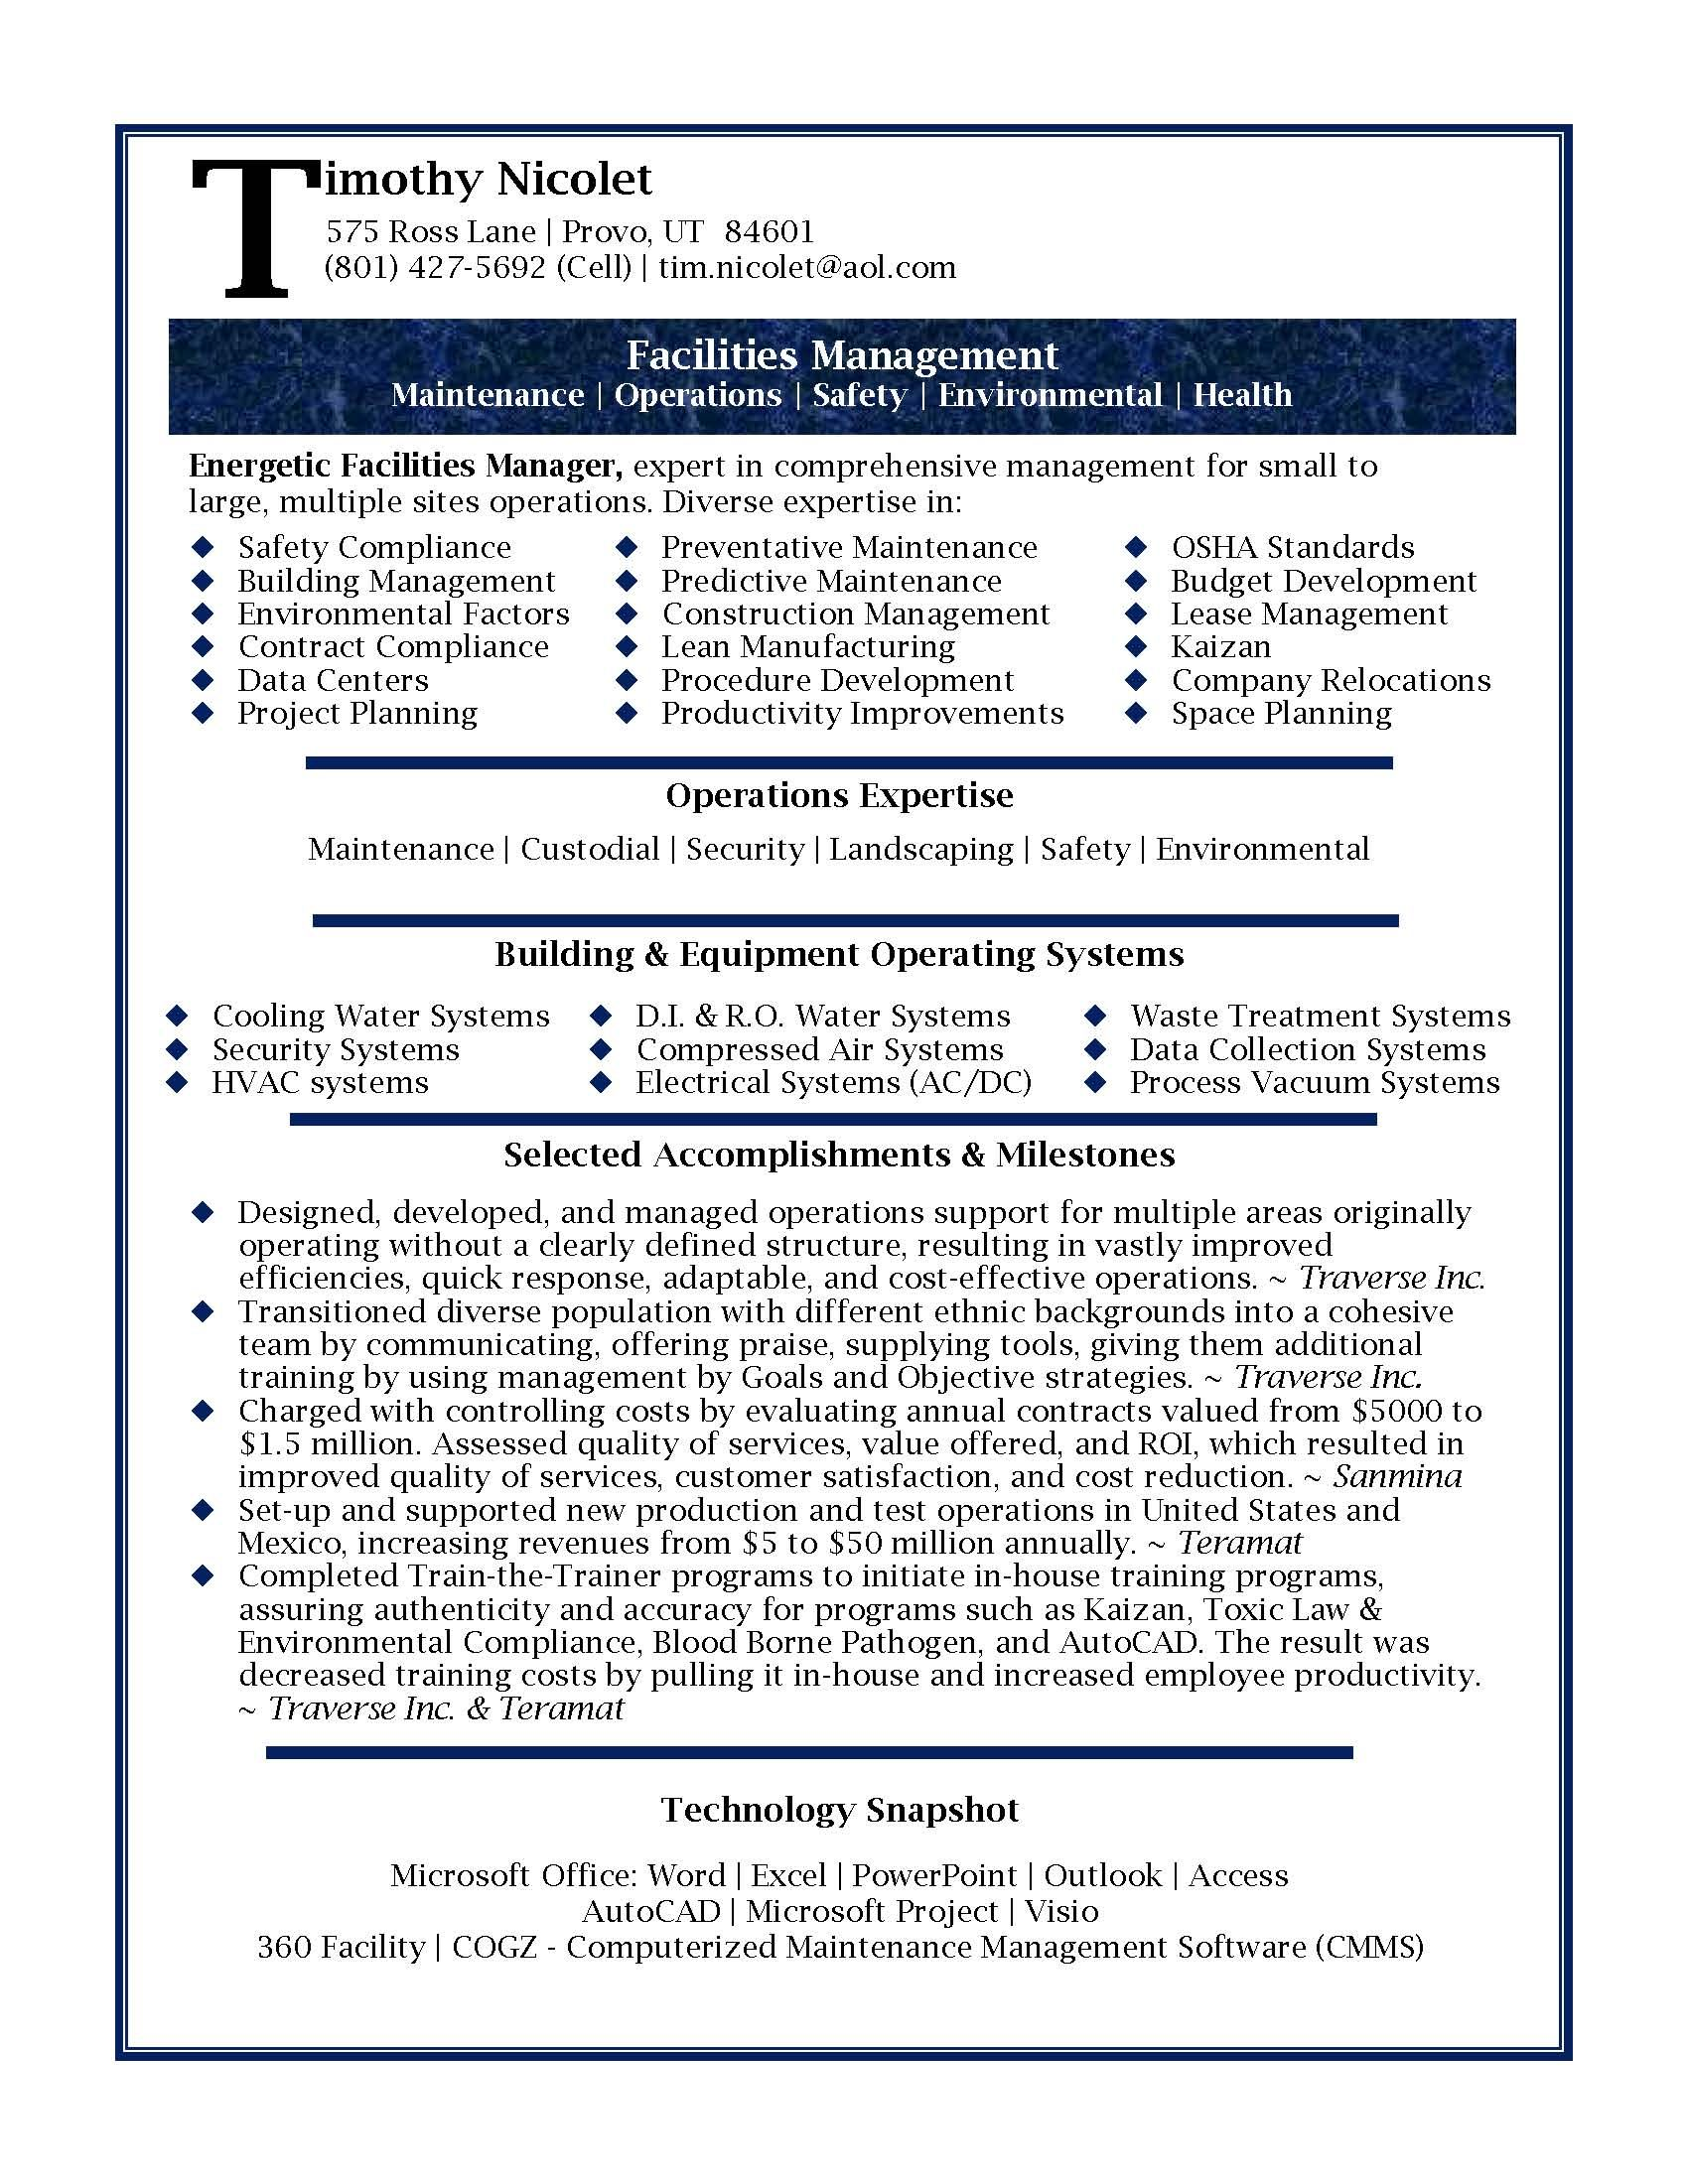 resume samples professional facilities manager resume sample - Resume Samples For Professionals